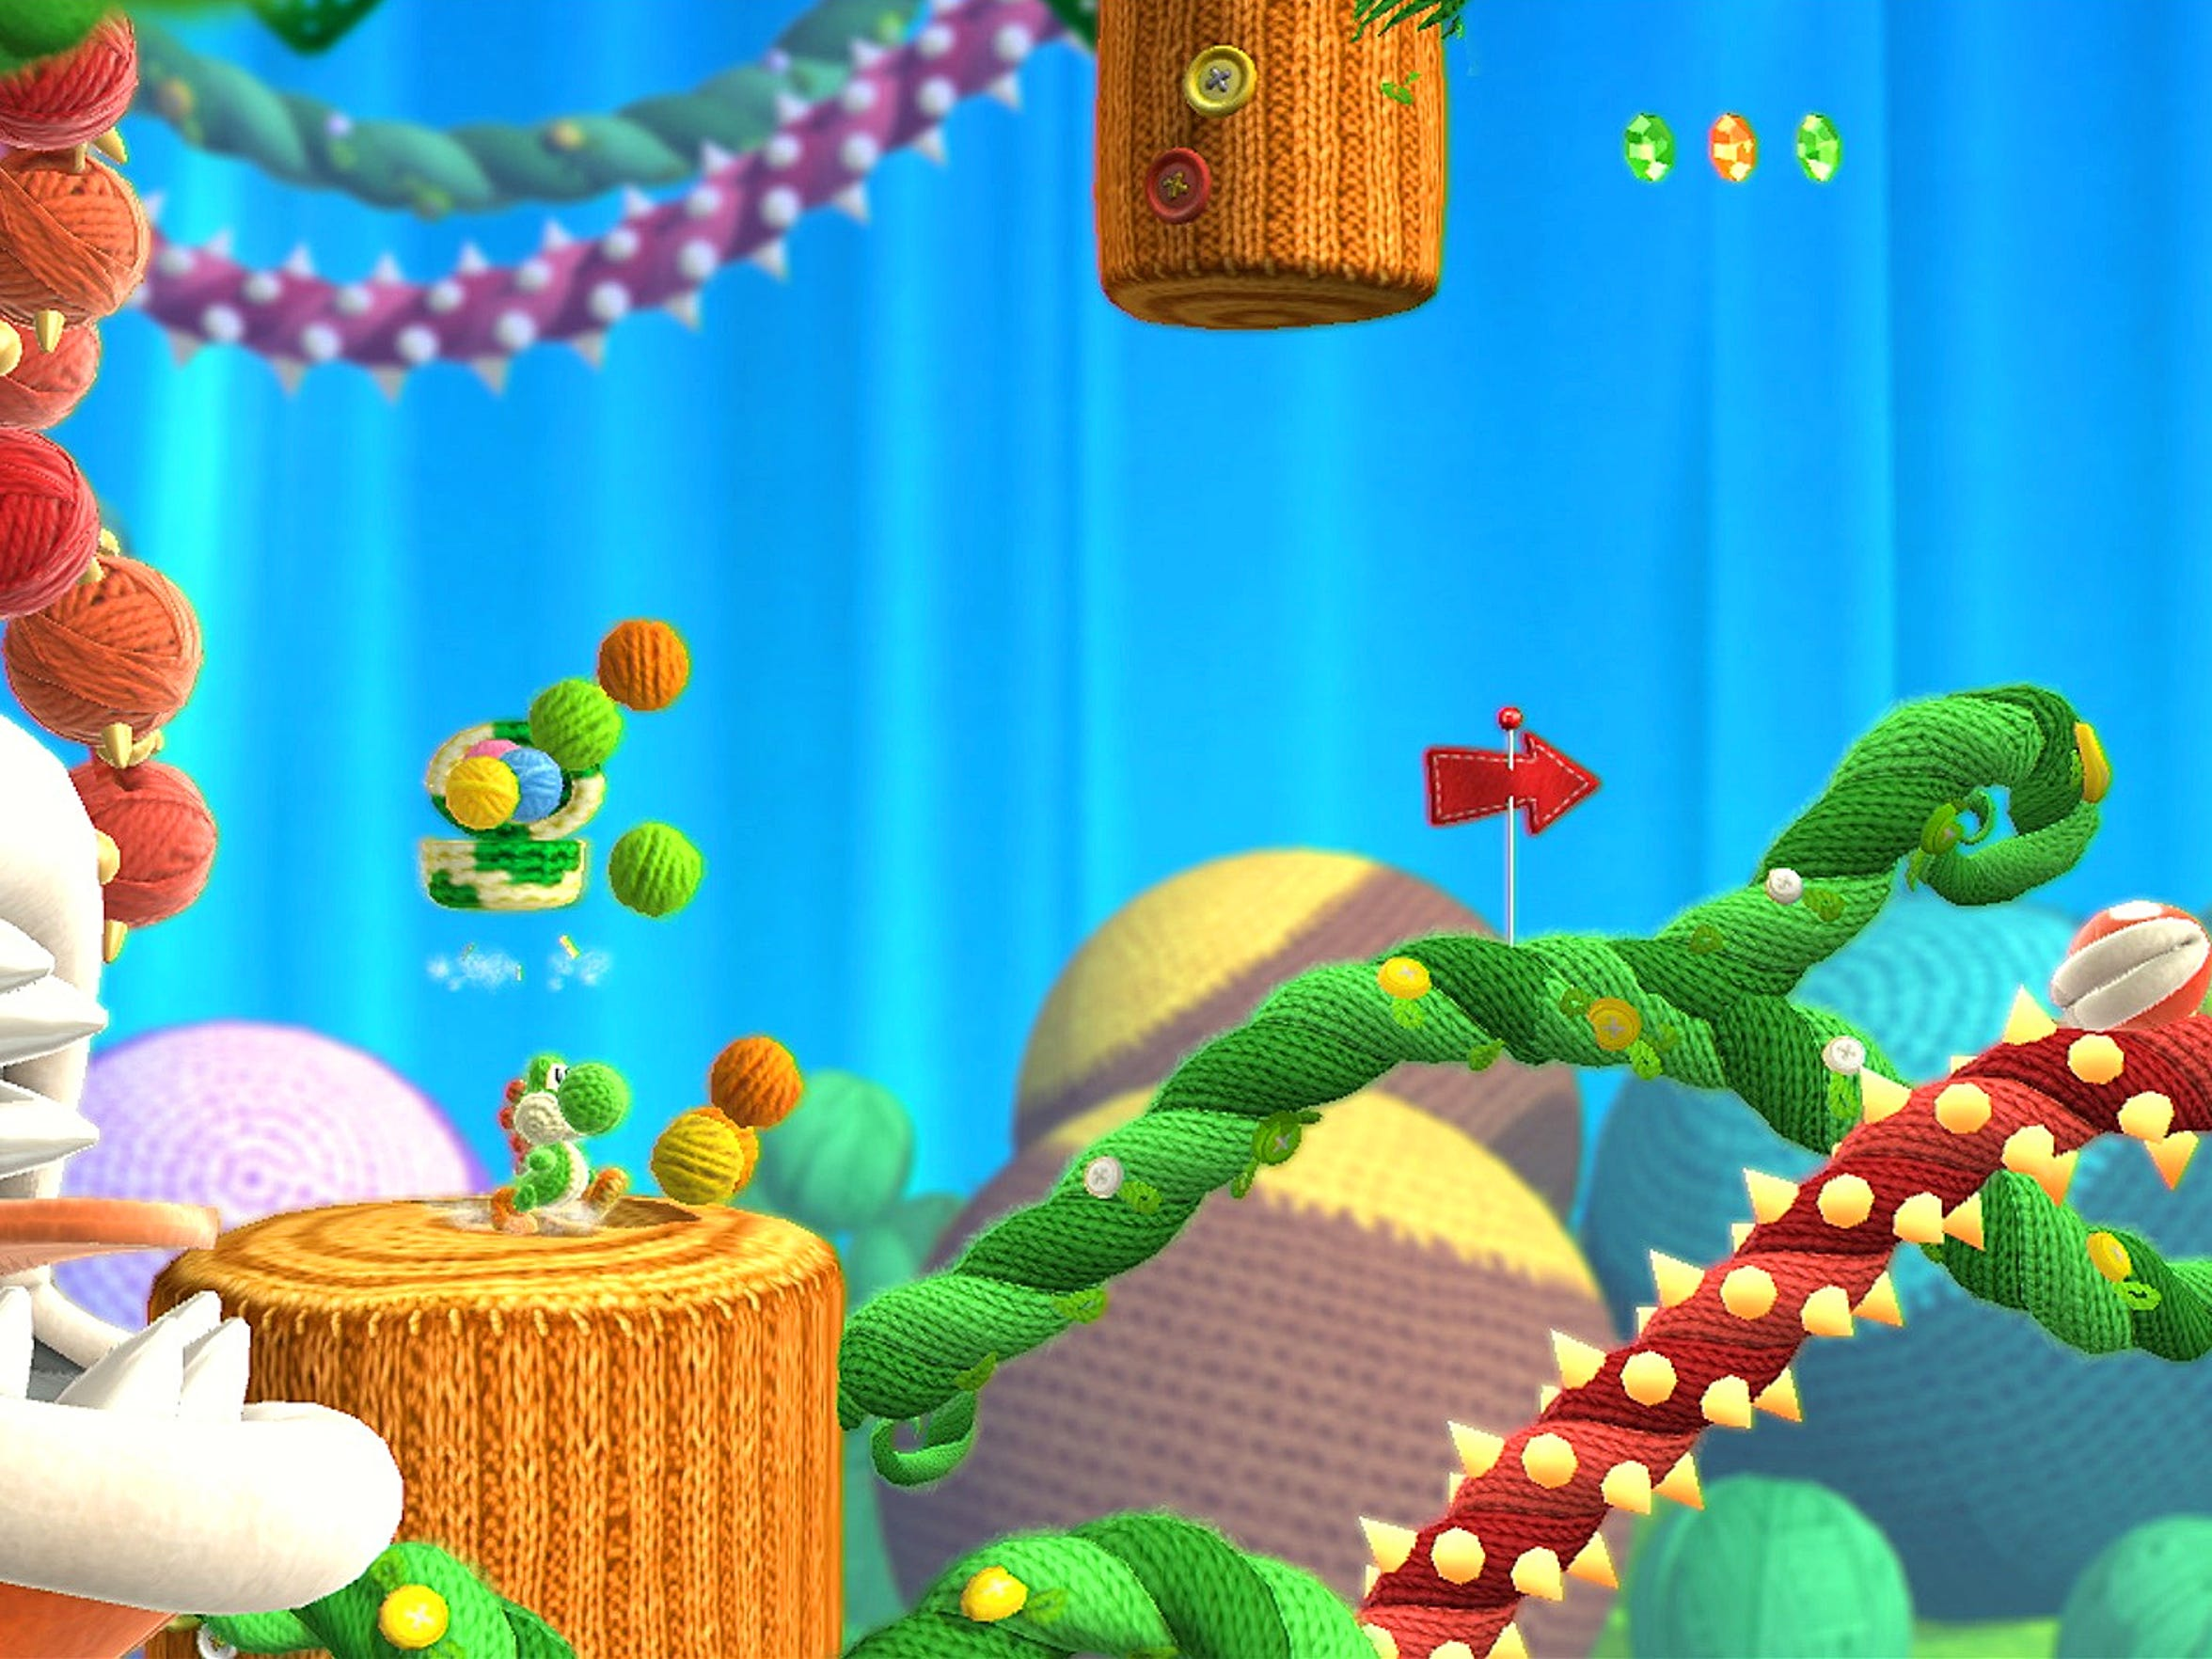 """Platforming in """"Yoshi's Woolly World"""" is polished and designed to be accessible to gamers of all skill levels."""